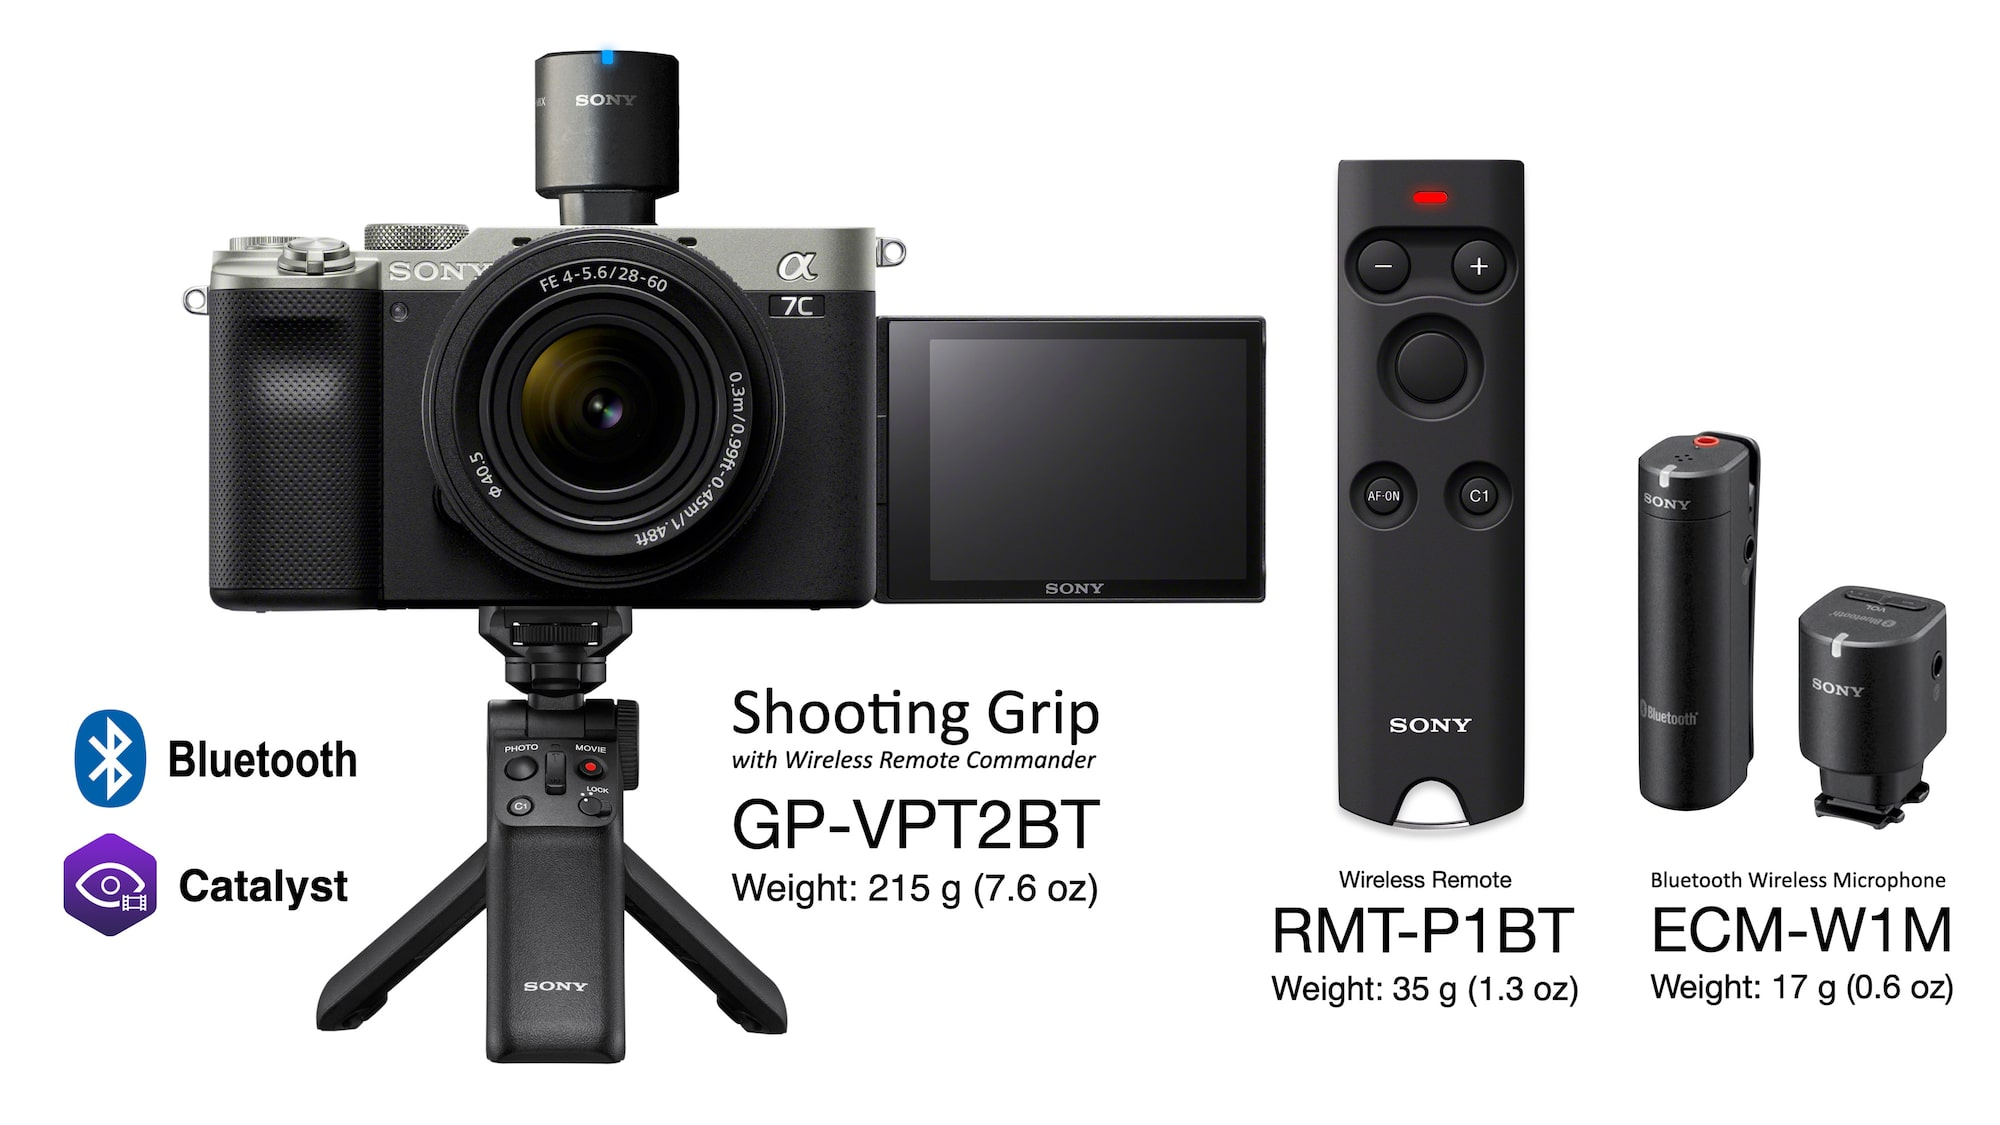 Alpha 7C, GP-VPT2BT shooting grip, RMT-P1BT wireless remote, and ECM-W1M Bluetooth wireless microphone